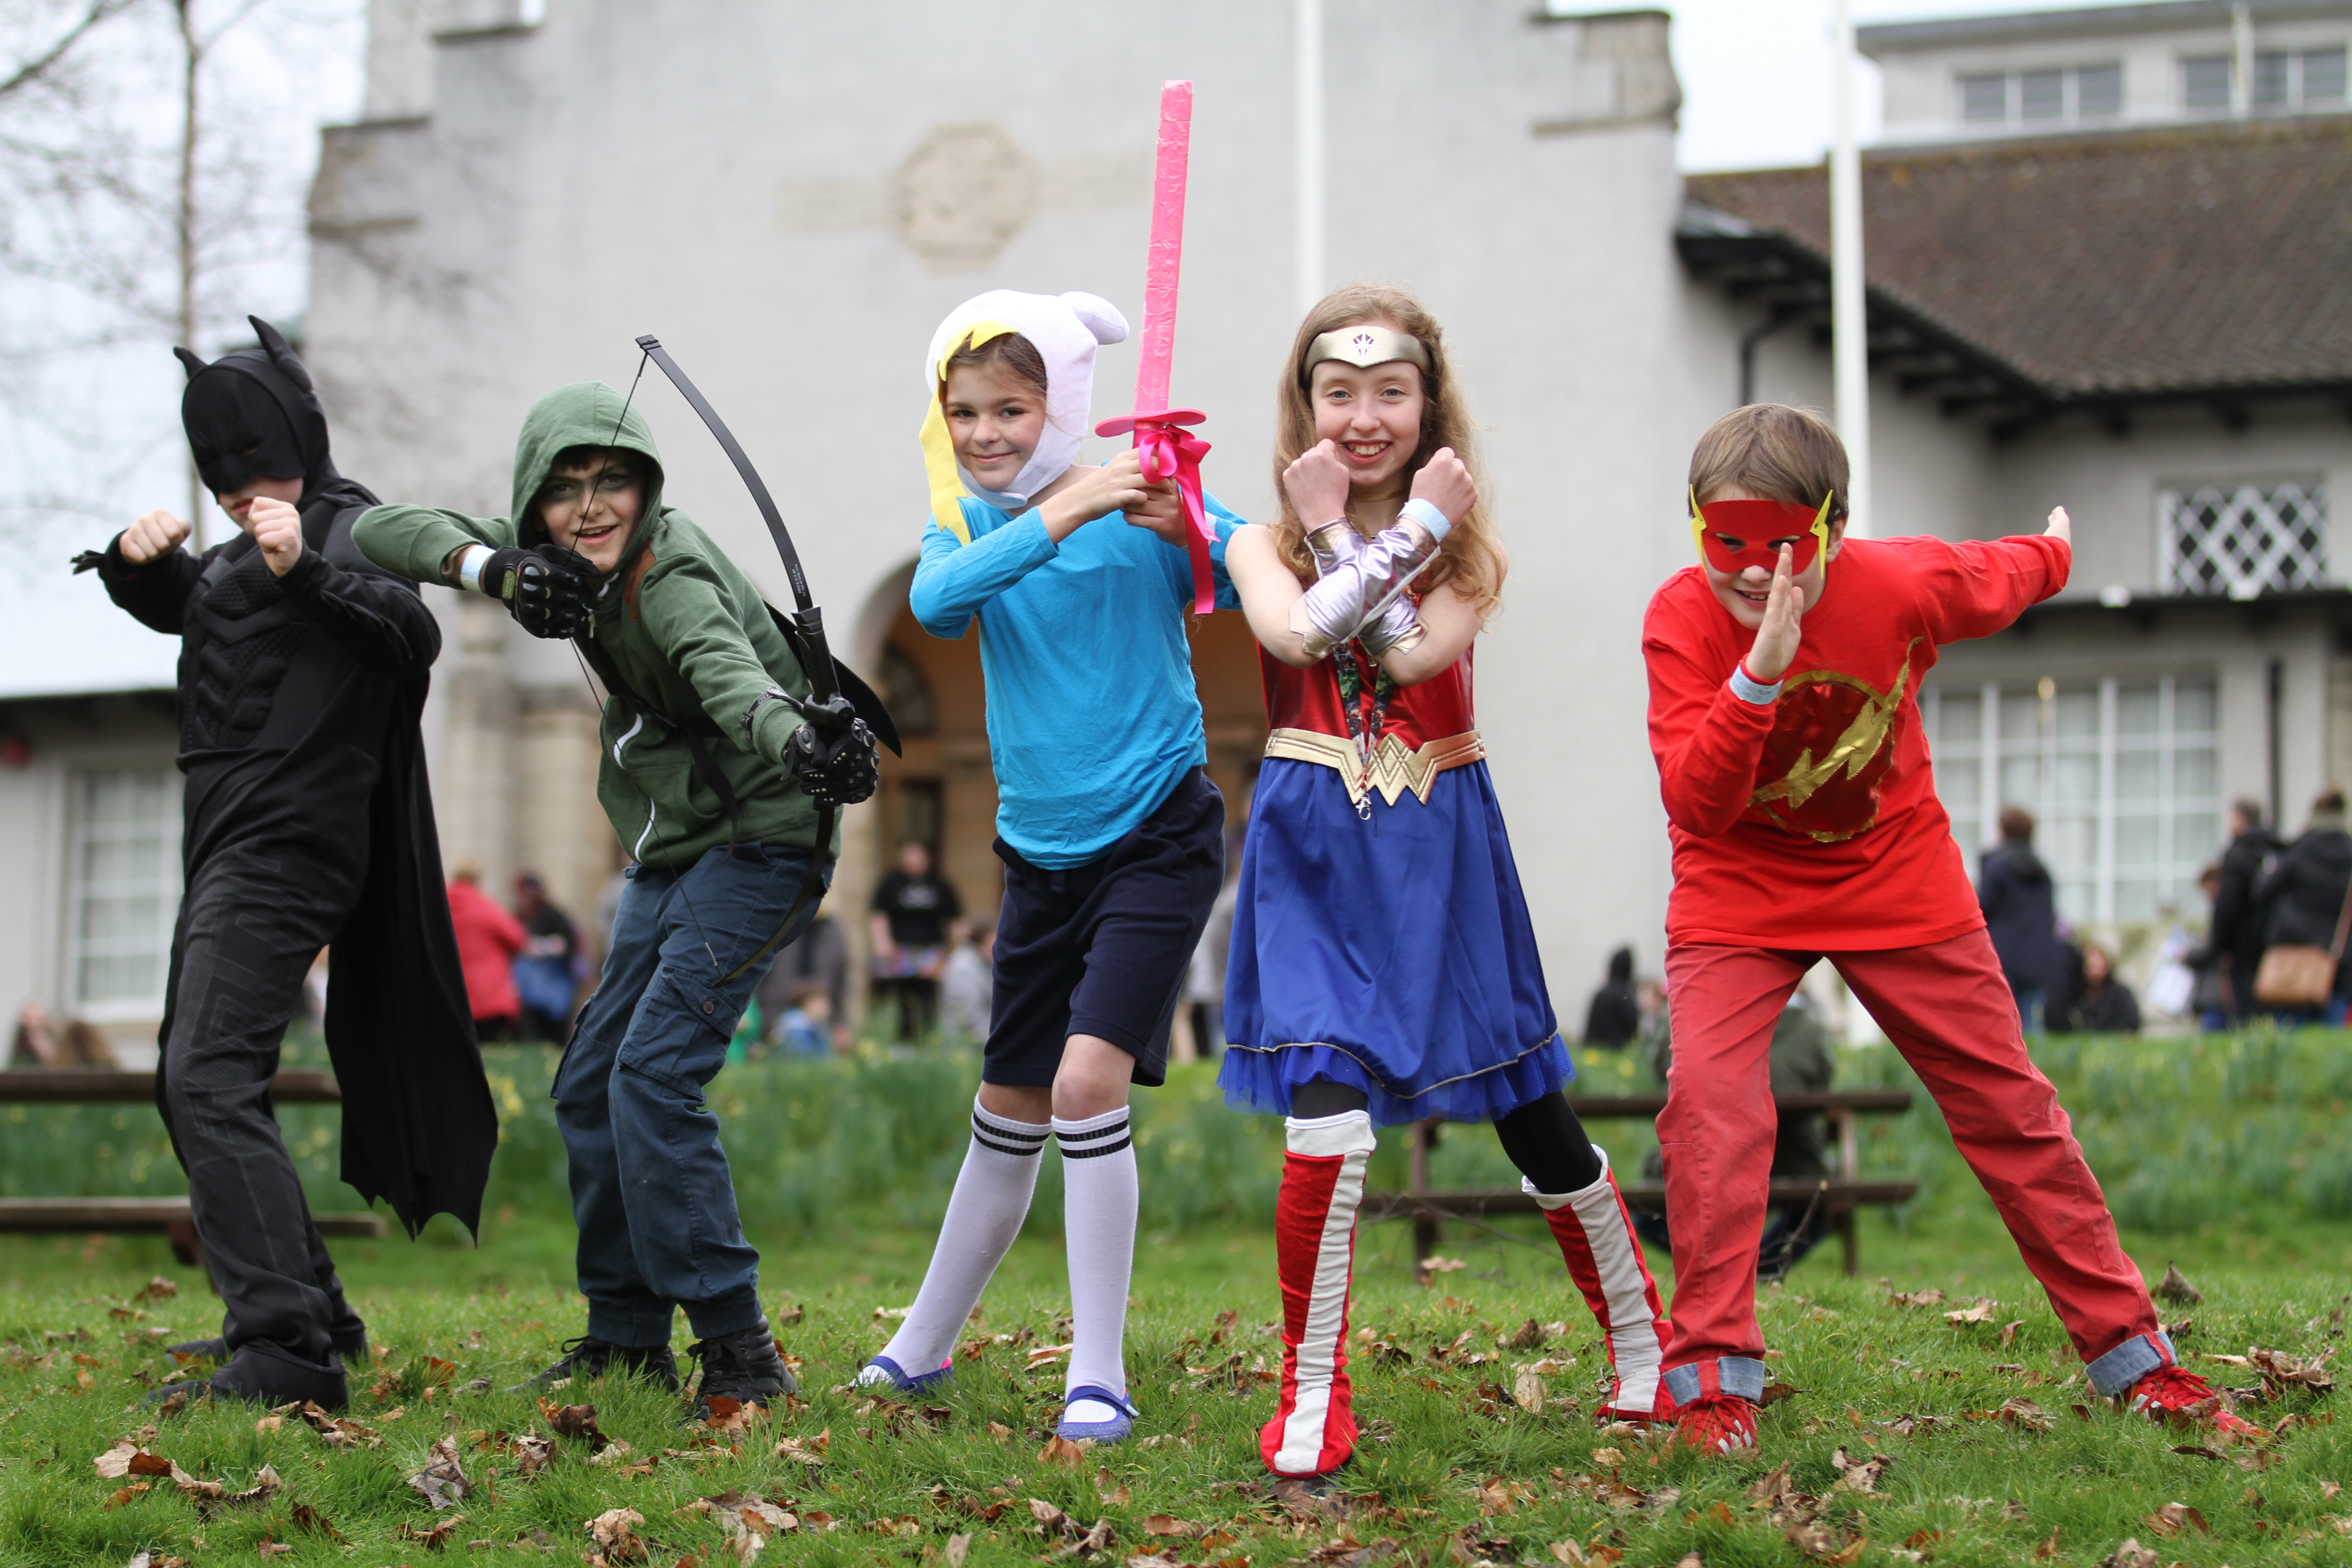 Superheroes demonstrate their super powers at Dunfermline Comic Con